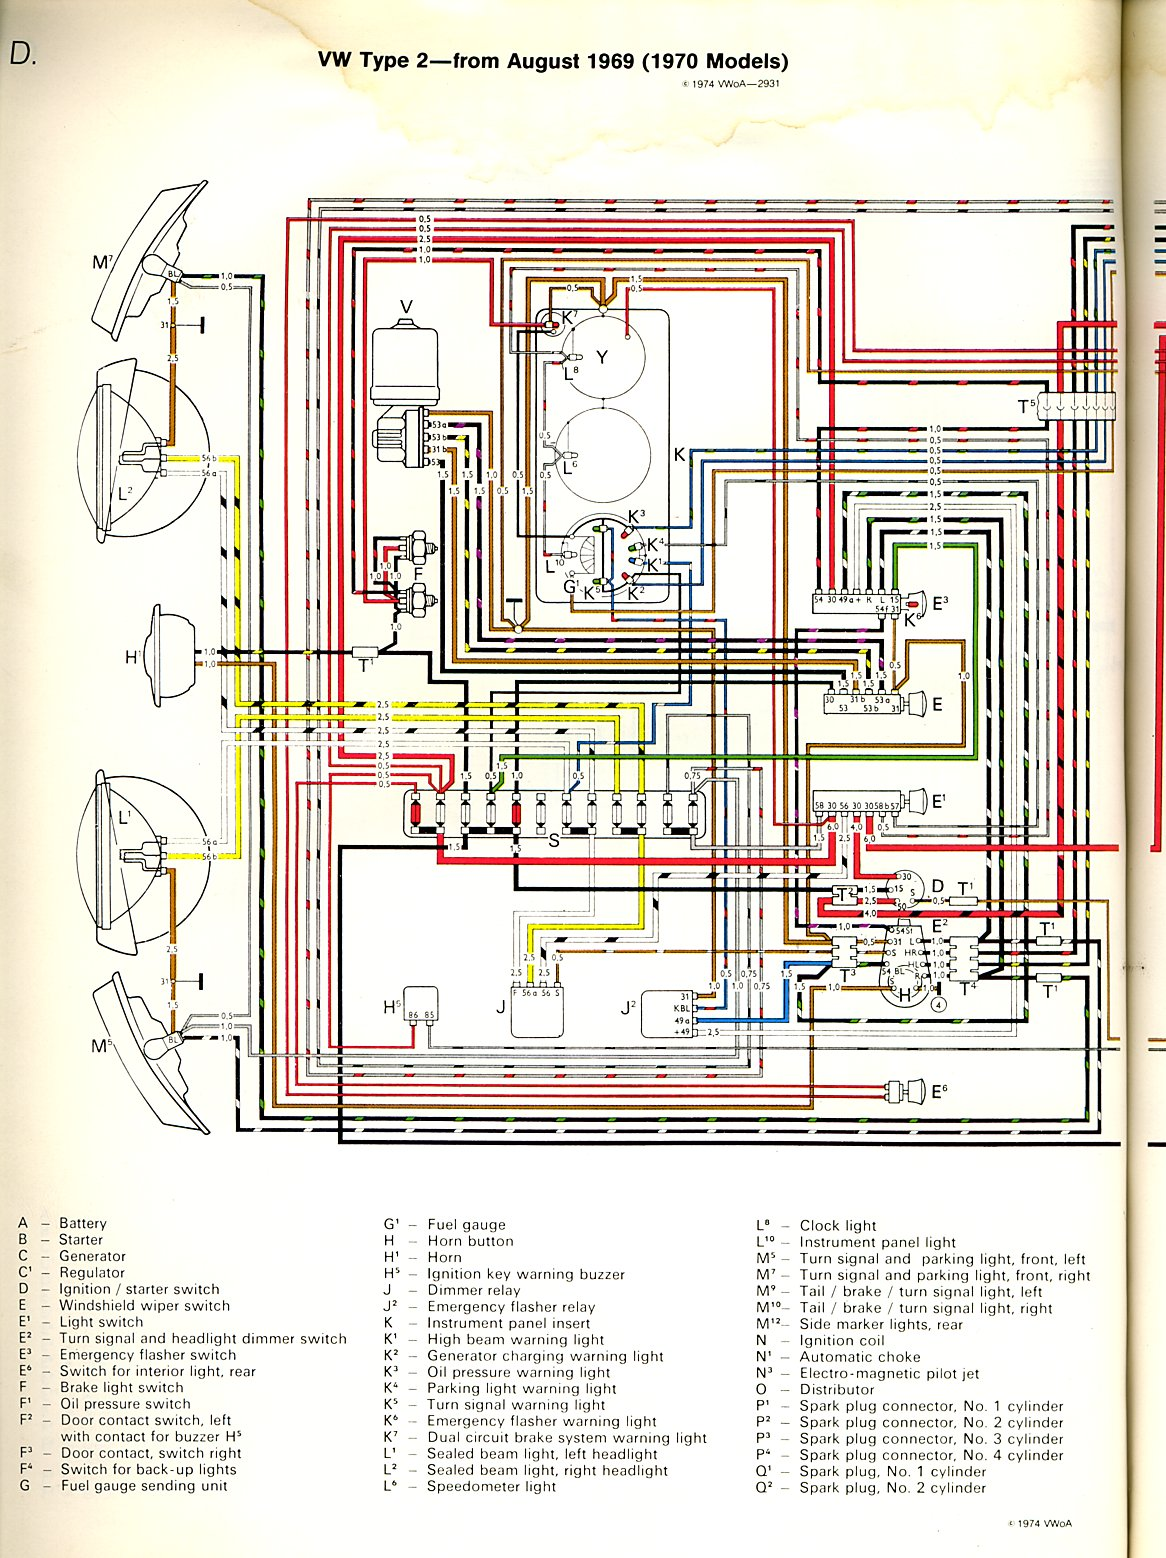 baybus_70a thesamba com type 2 wiring diagrams  at honlapkeszites.co